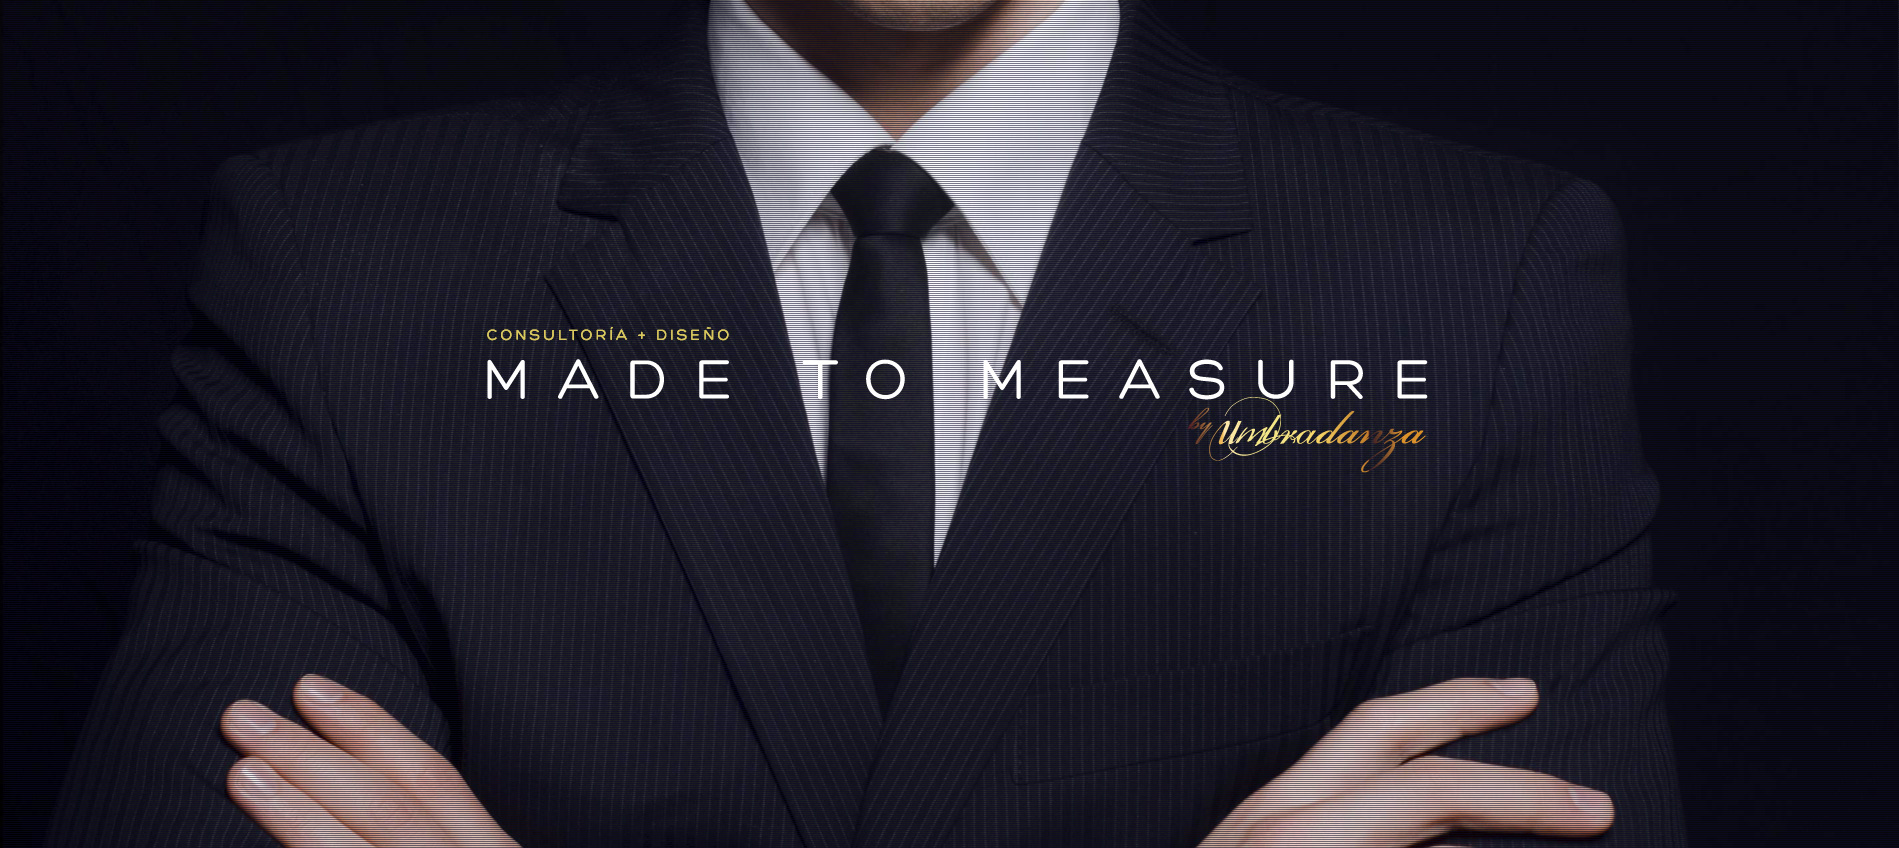 Consultoria de diseño. Made to Measure.